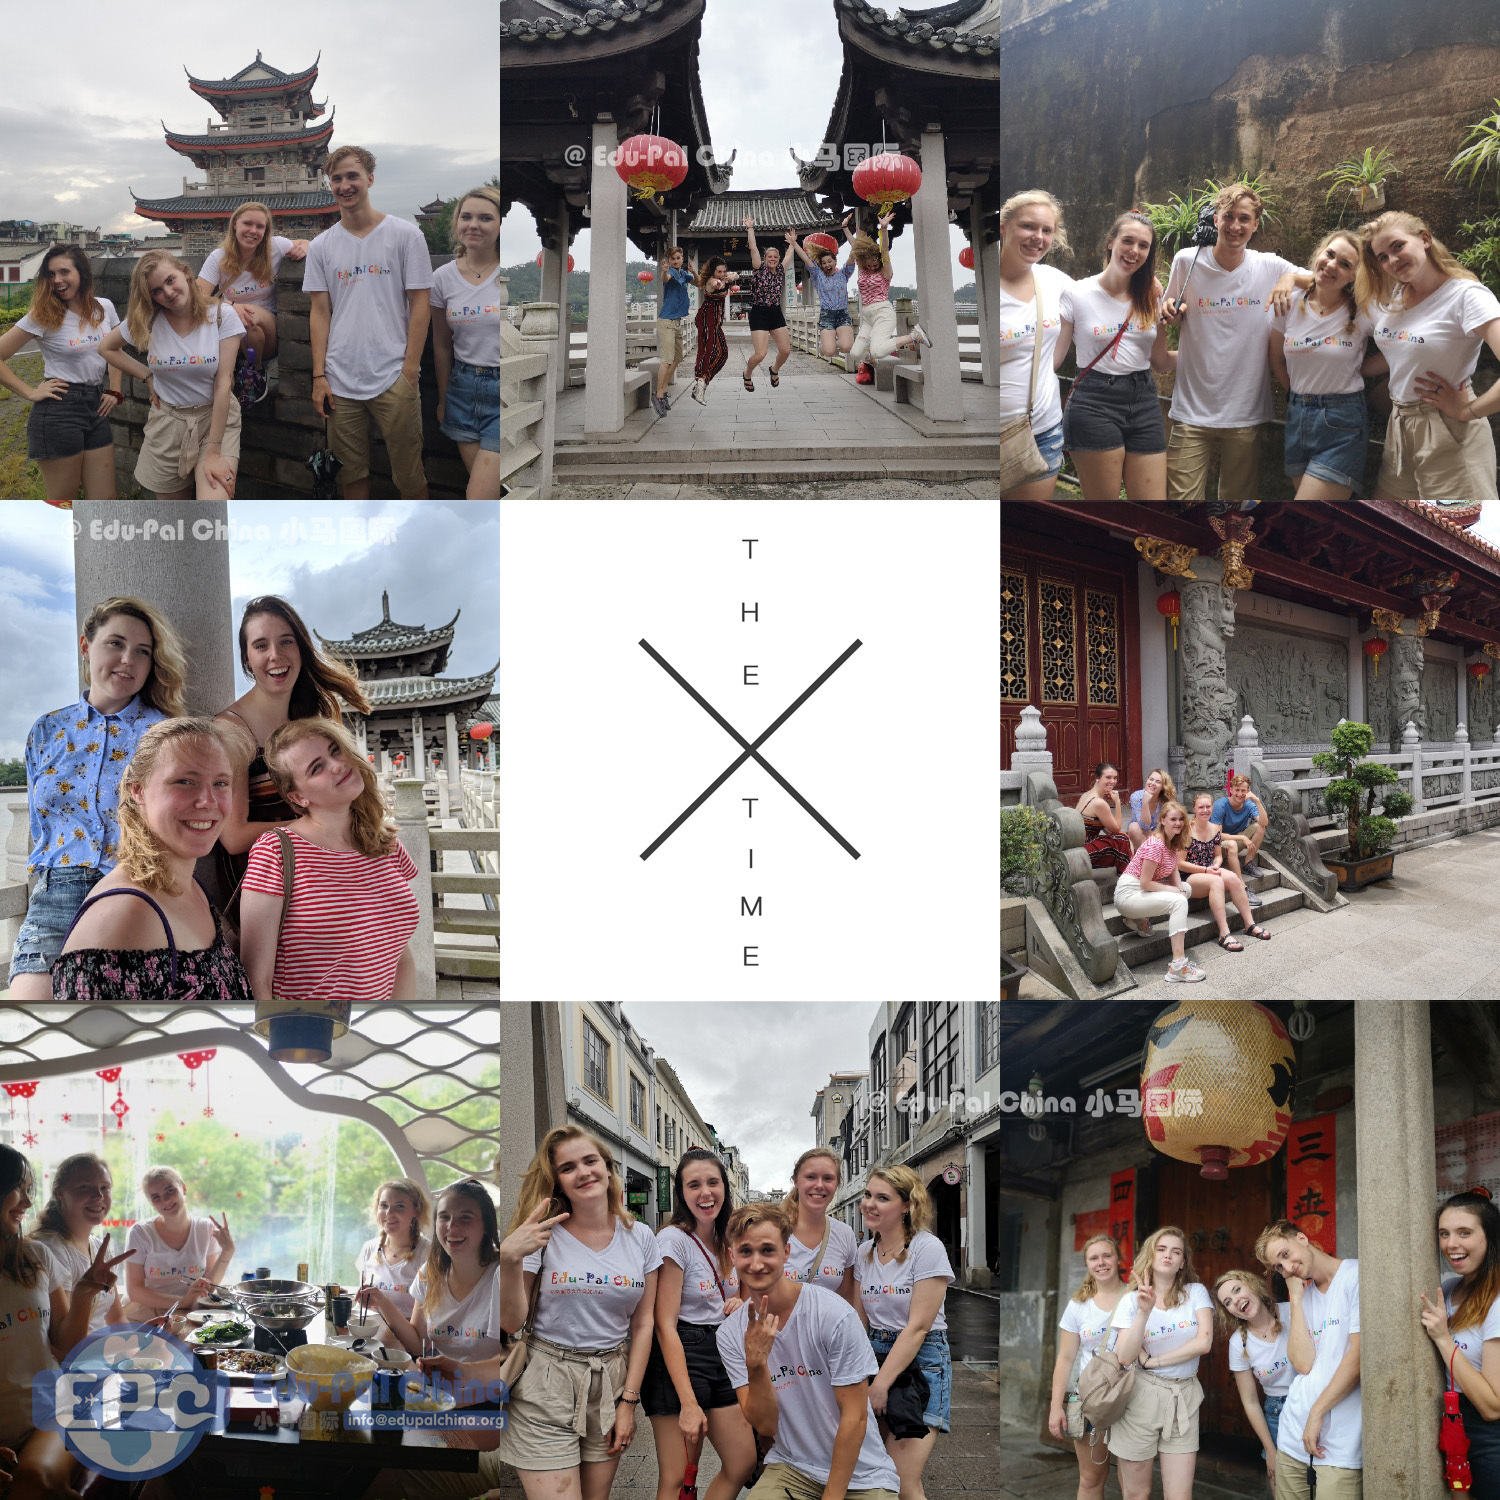 Gap Year Program - Edu-Pal China: Mandarin Learning and Cultural Exchange  1